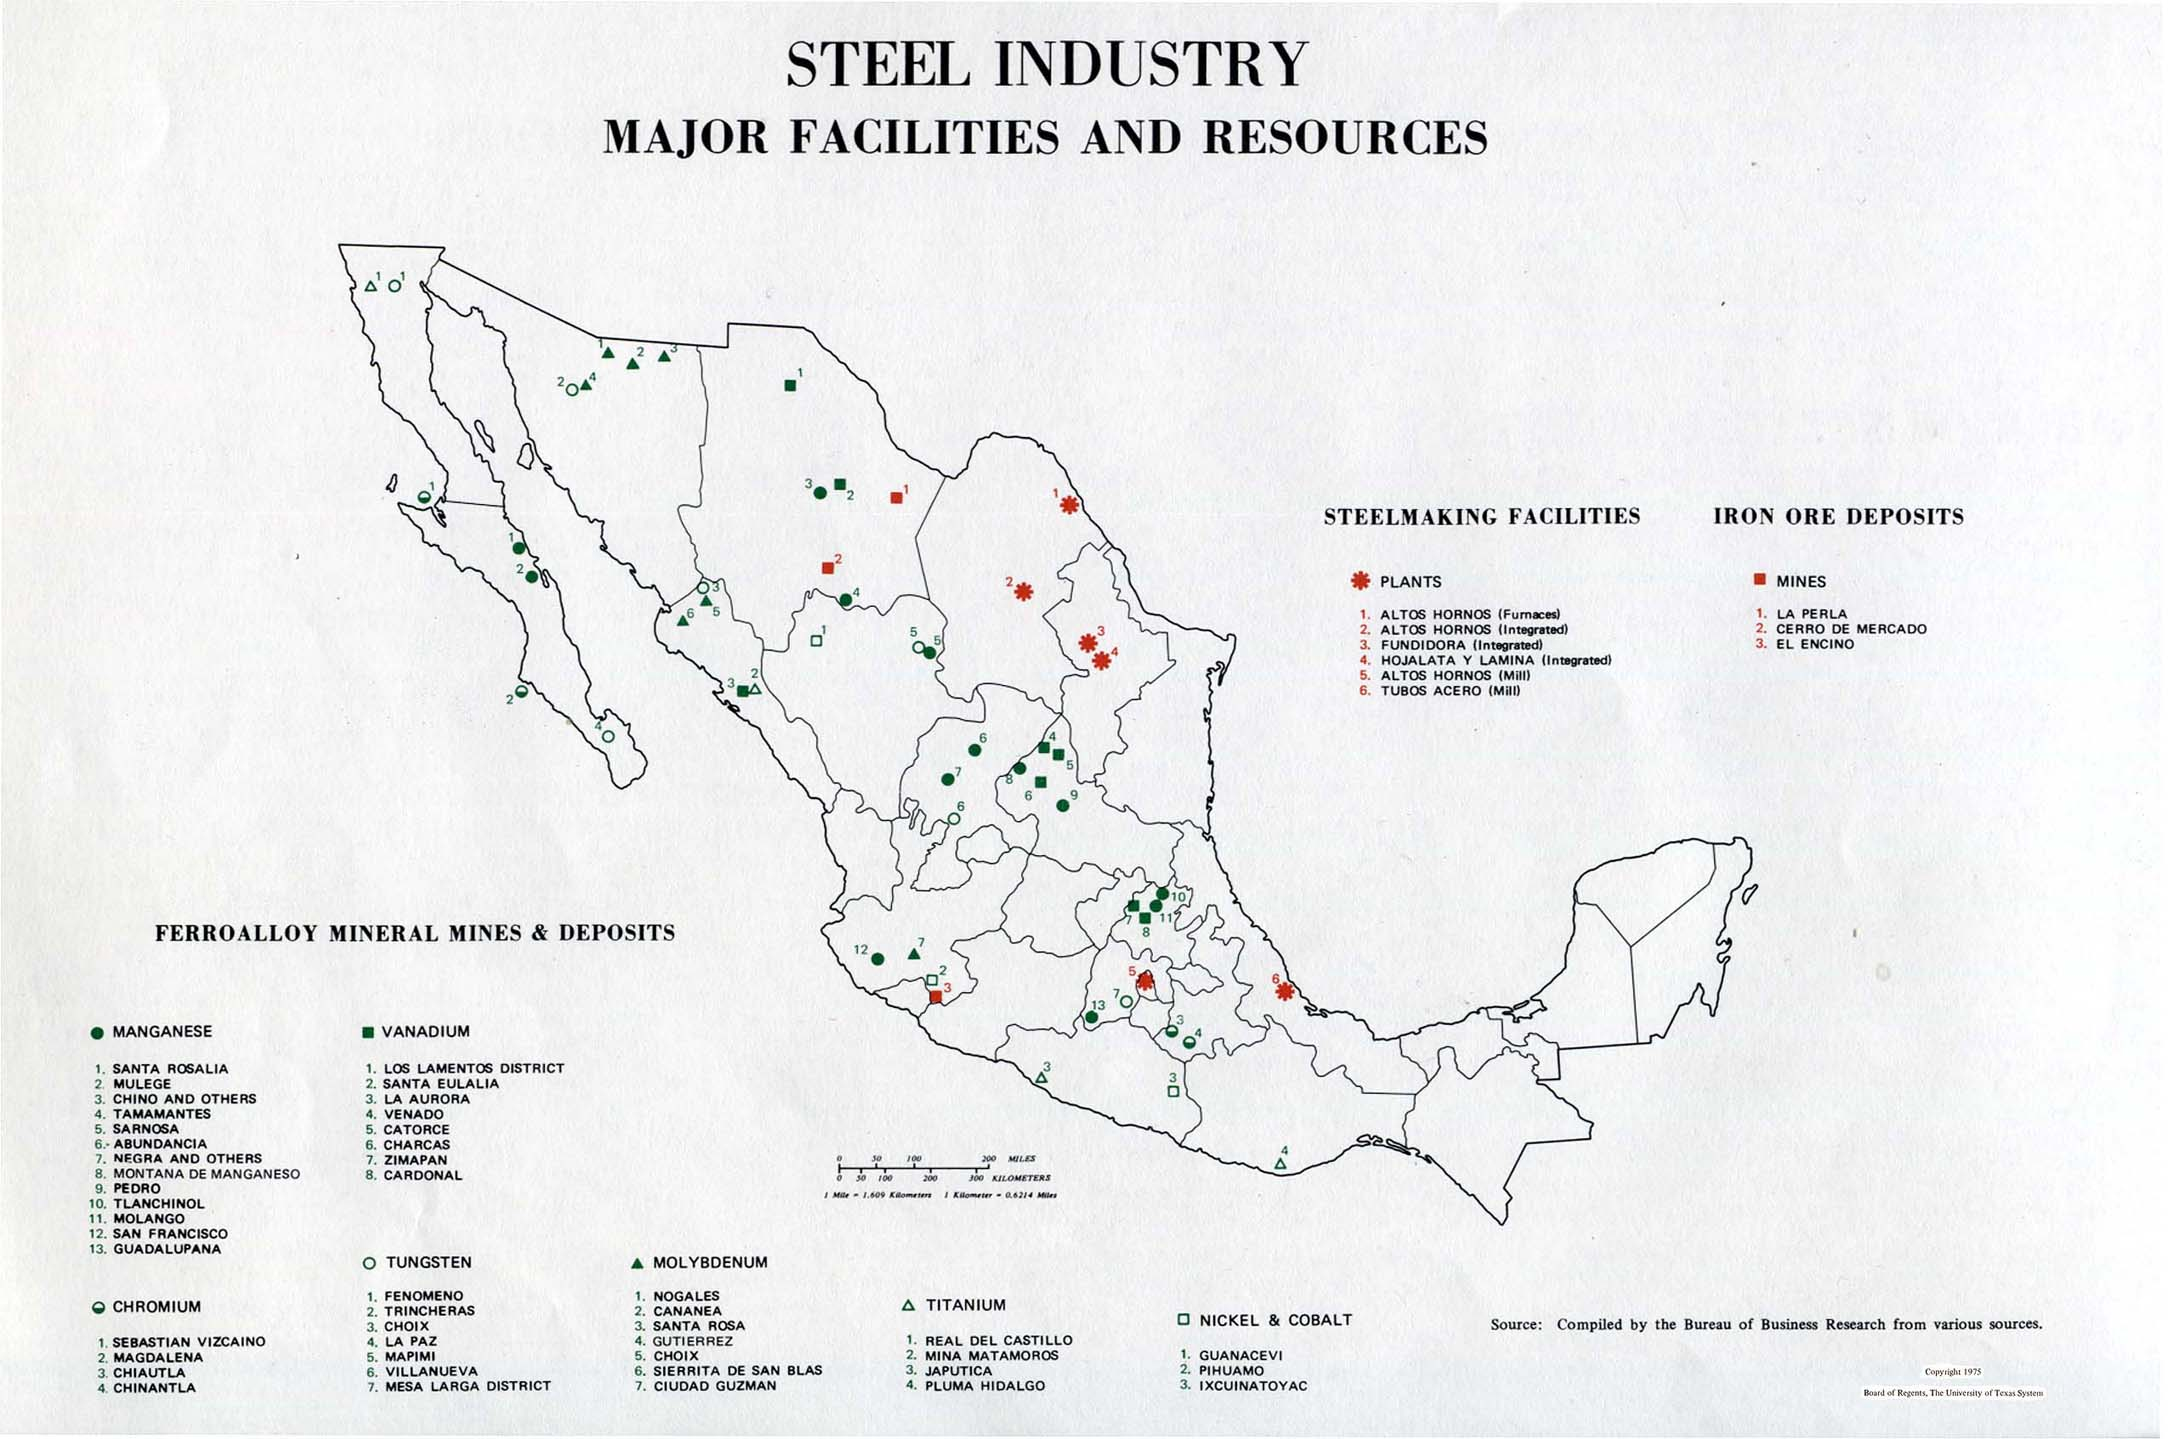 Steel Industry Major Facilities and Resources in Mexico 1975